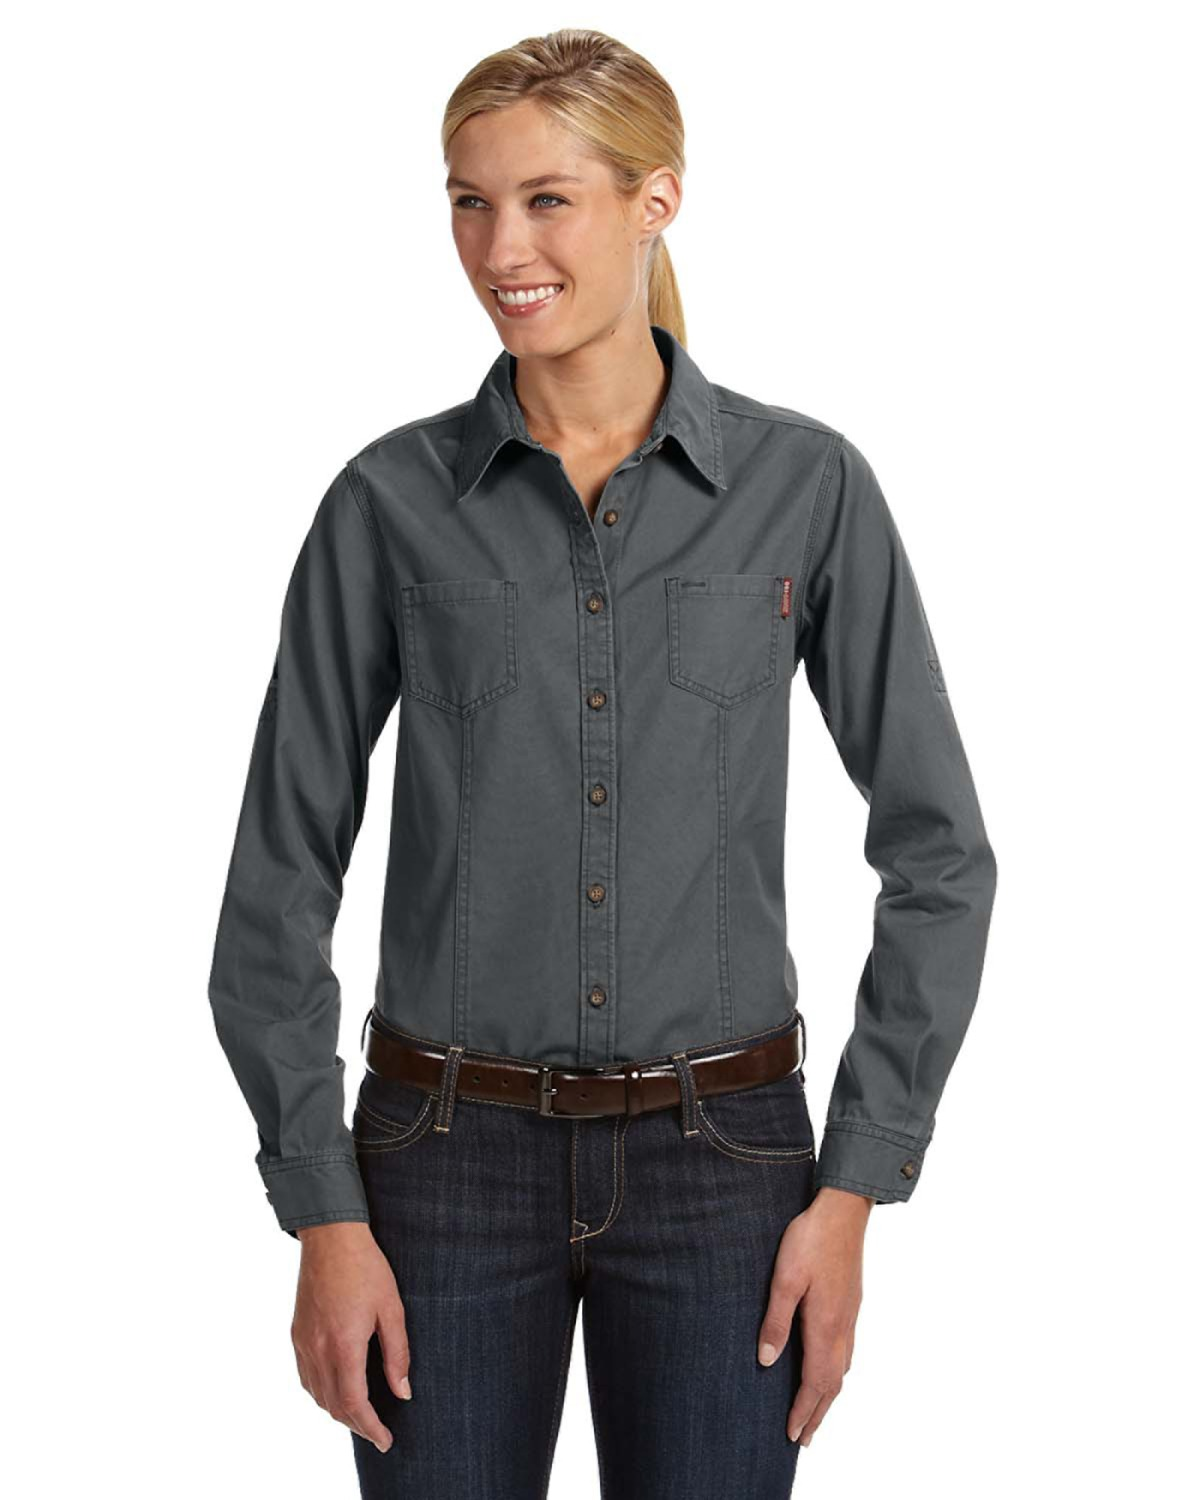 DRI DUCK 8284 Sawtooth Collection Ladies' Mortar Long Sleeve Shirt